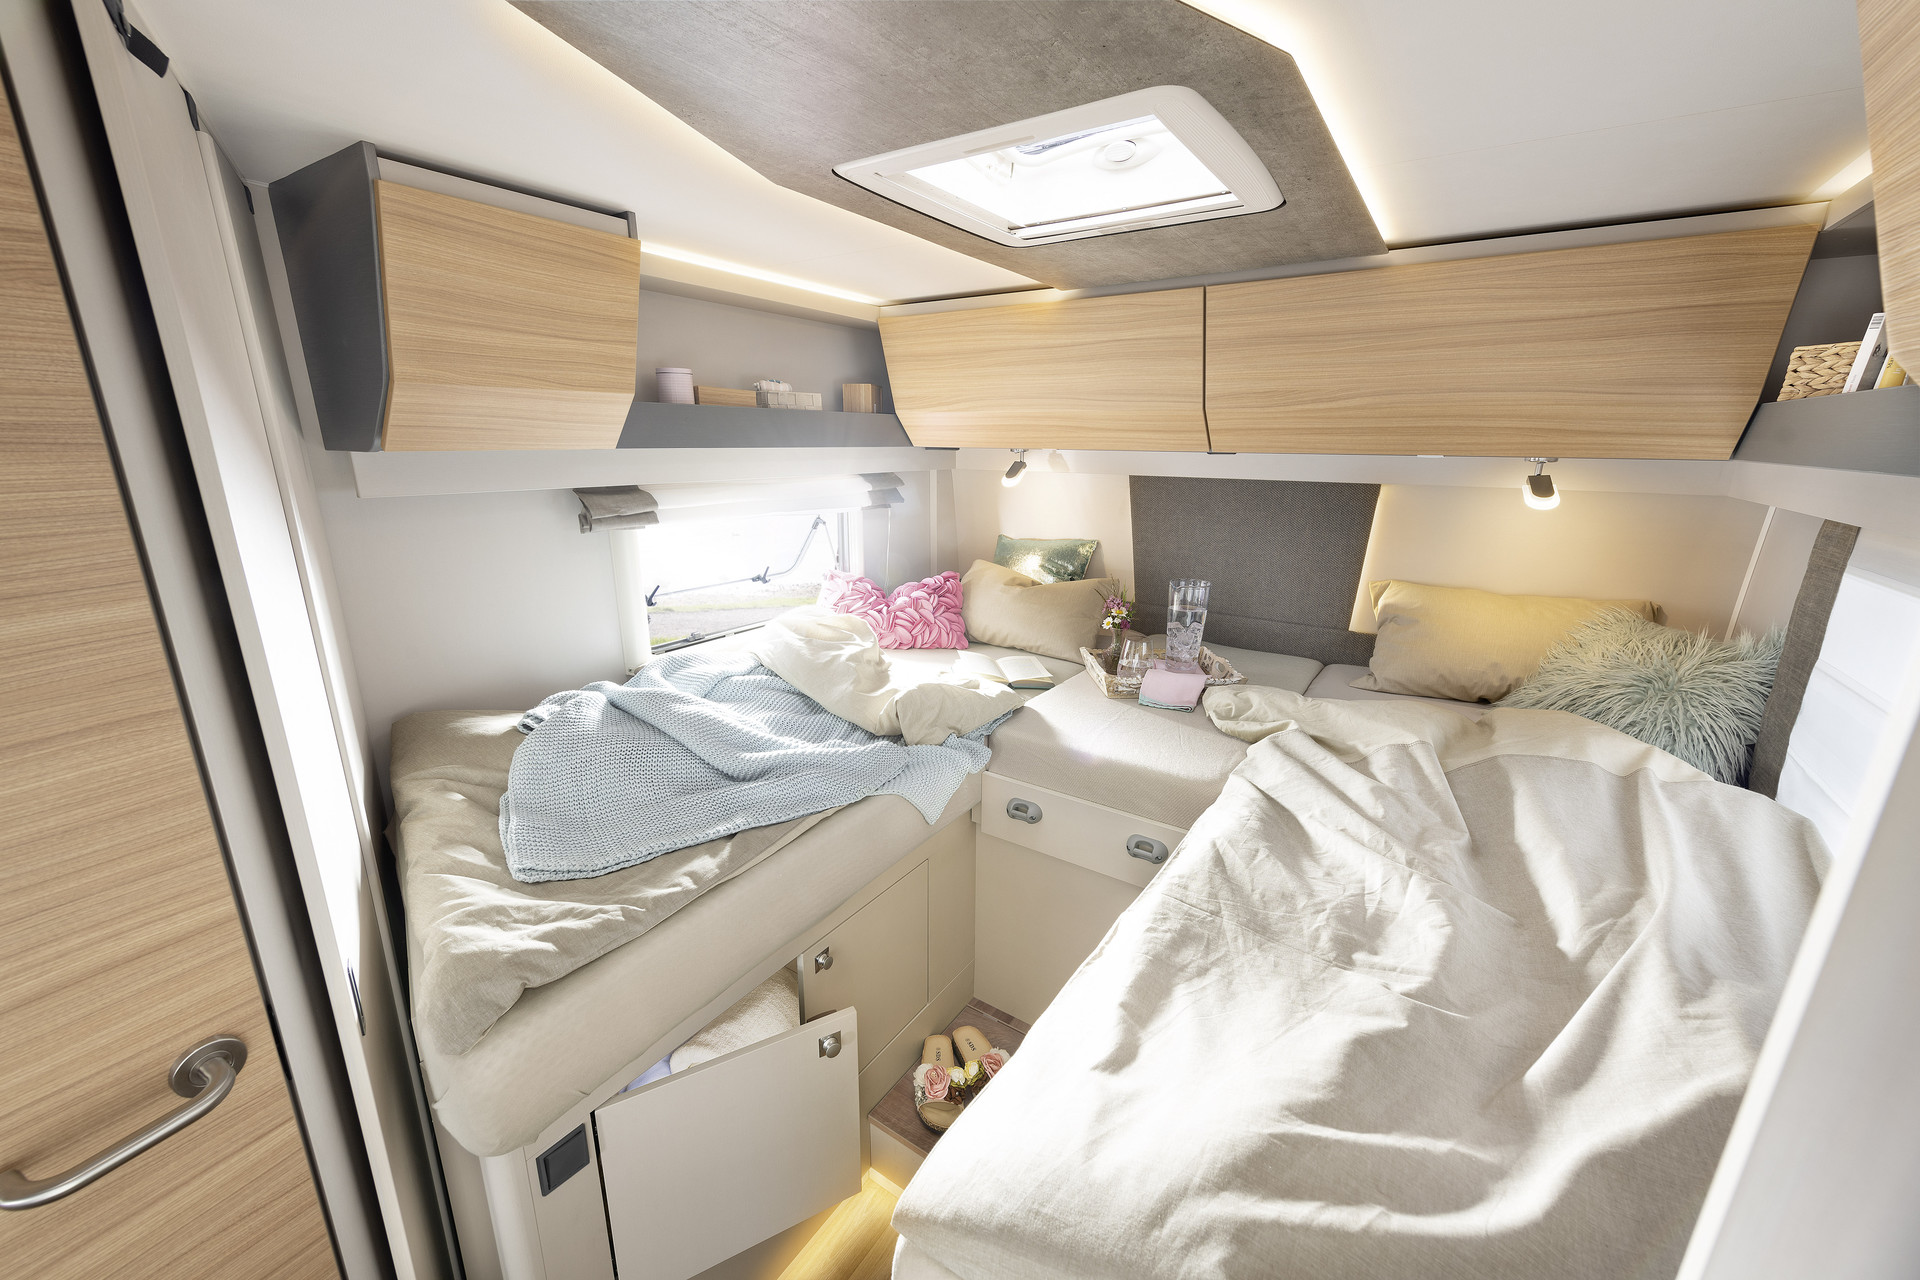 The single beds, which are over two metres long, are connected via the head board and can be optionally converted into a large sleeping area • T / I 7051 EB